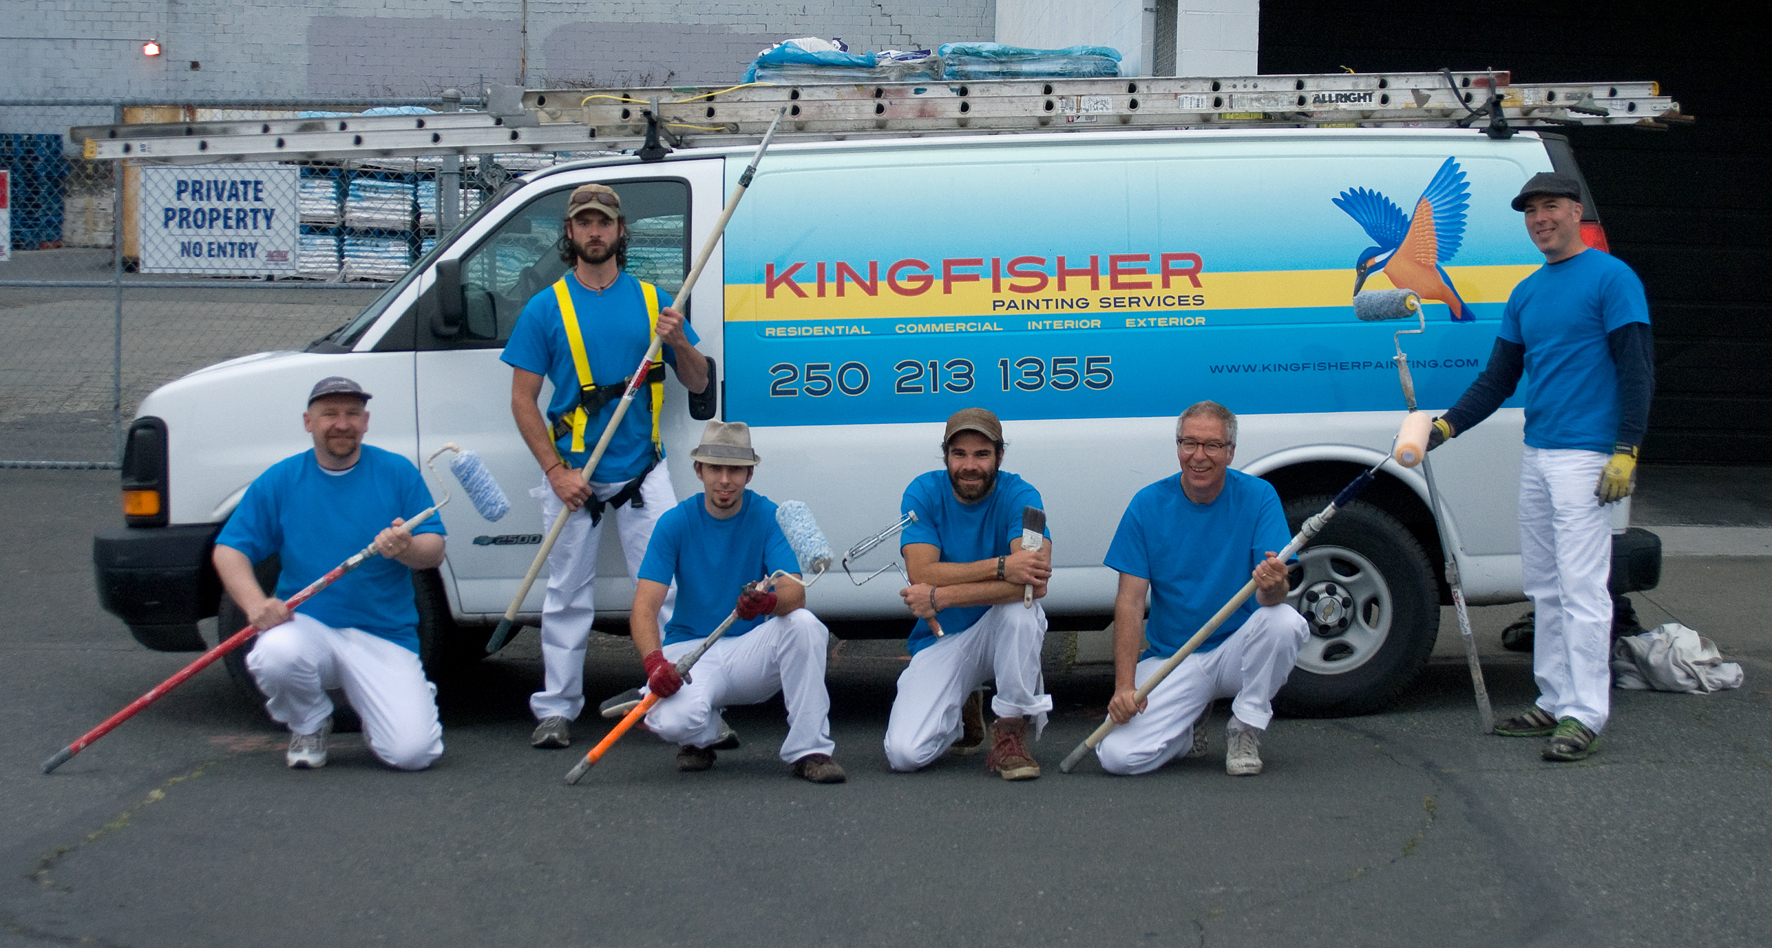 The Kingfisher Team